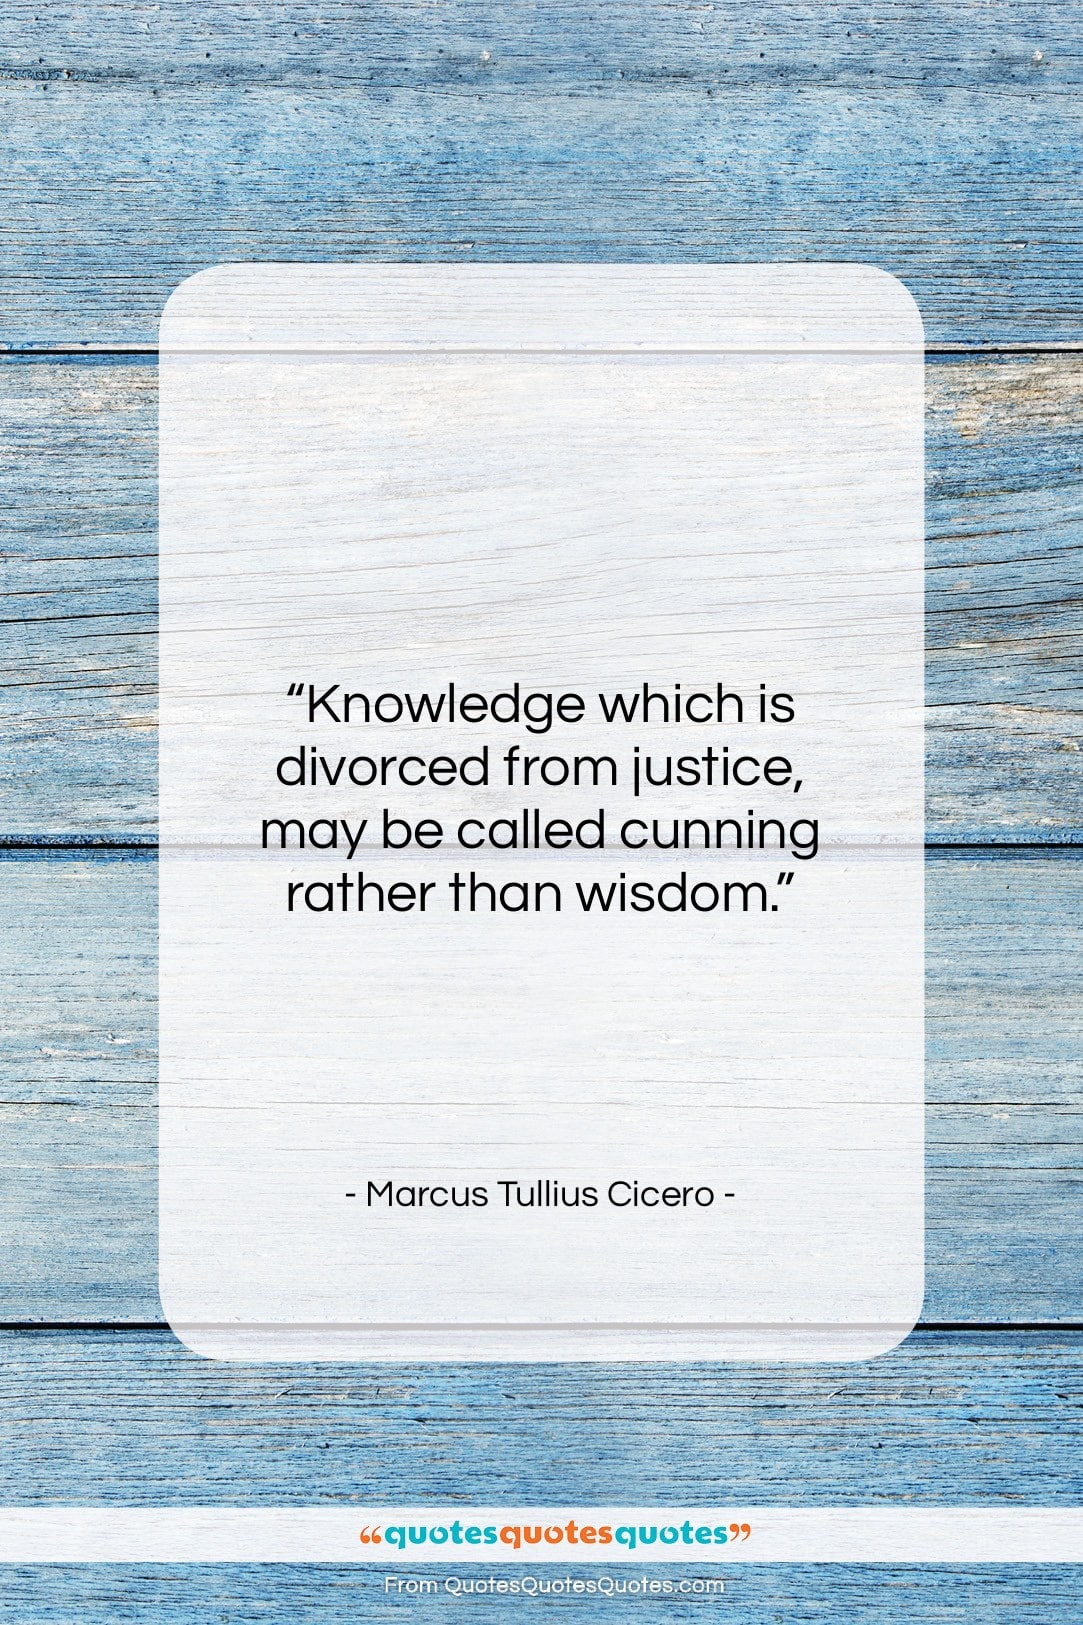 """Marcus Tullius Cicero quote: """"Knowledge which is divorced from justice, may…""""- at QuotesQuotesQuotes.com"""